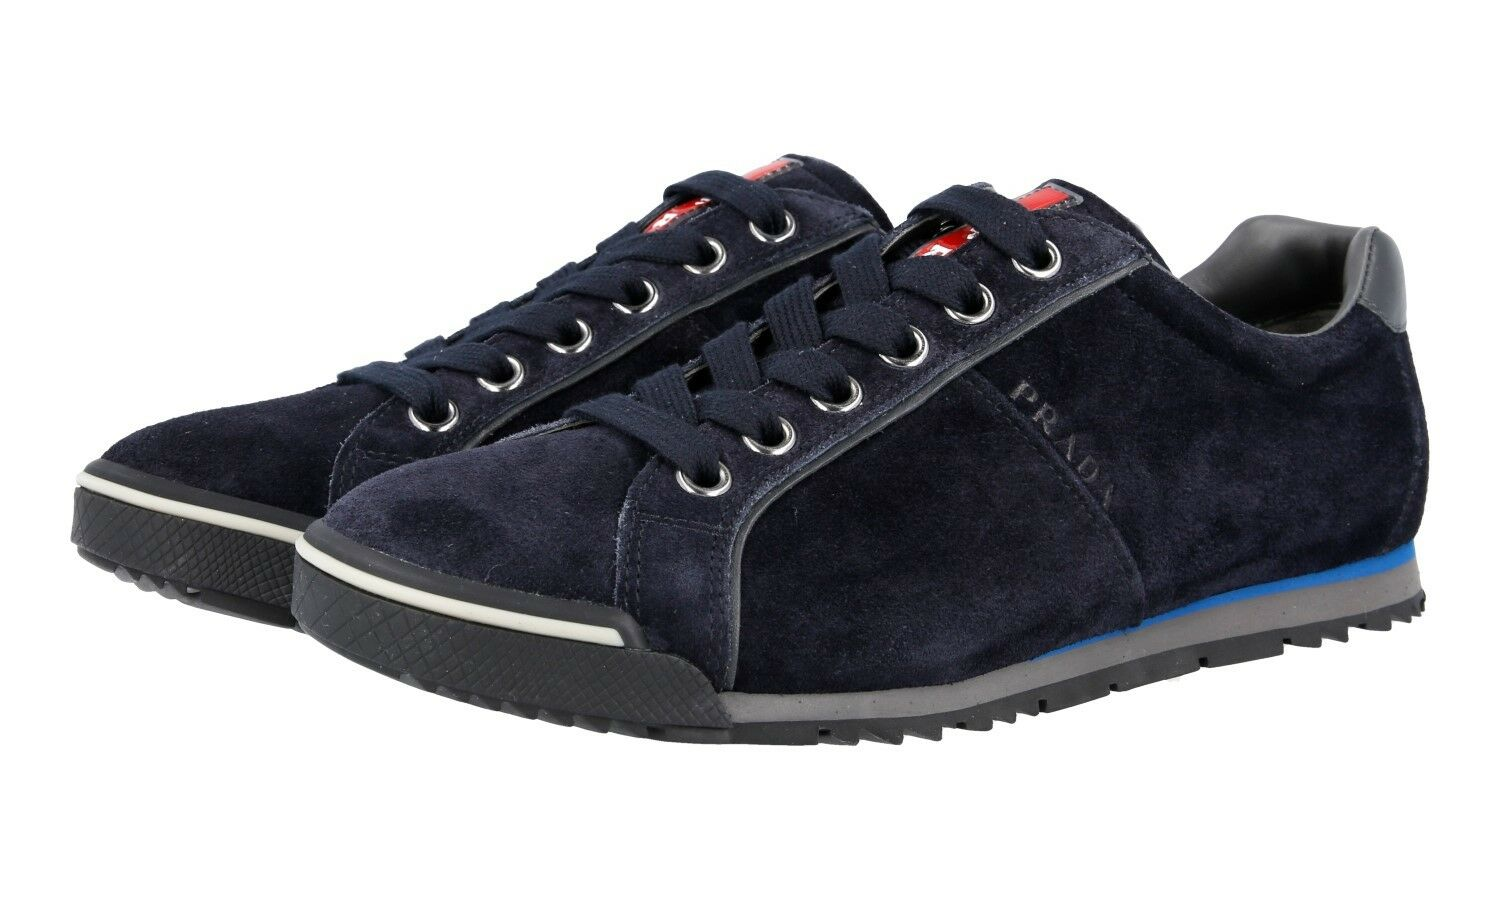 AUTH LUXURY PRADA SNEAKERS SHOES 4E2719 blueE SUEDE NEW 6 40 40,5